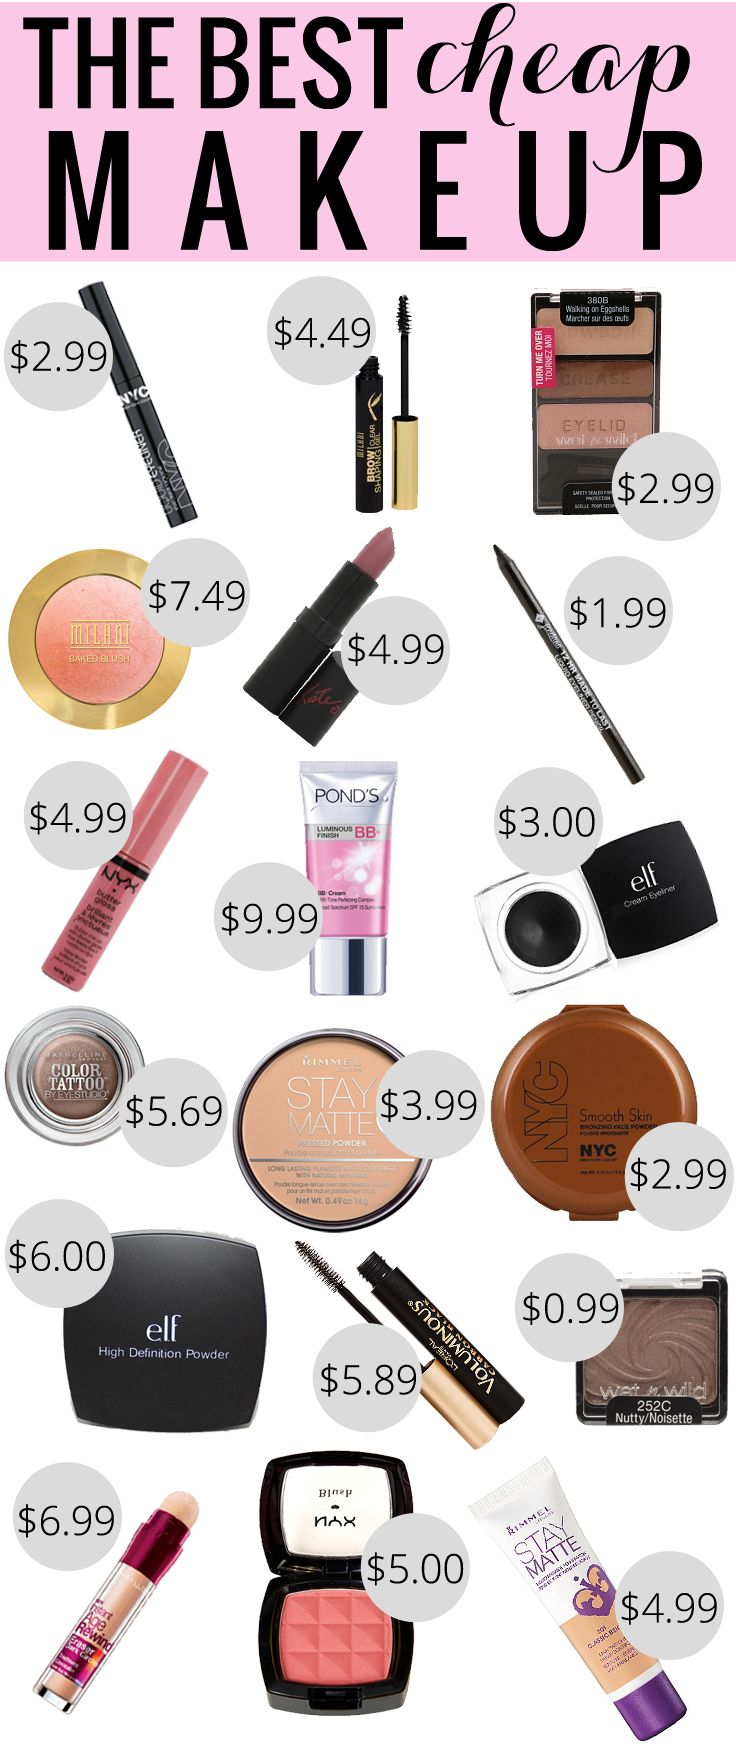 The Best Cheap Makeup, best drugstore makeup, makeup under $10...